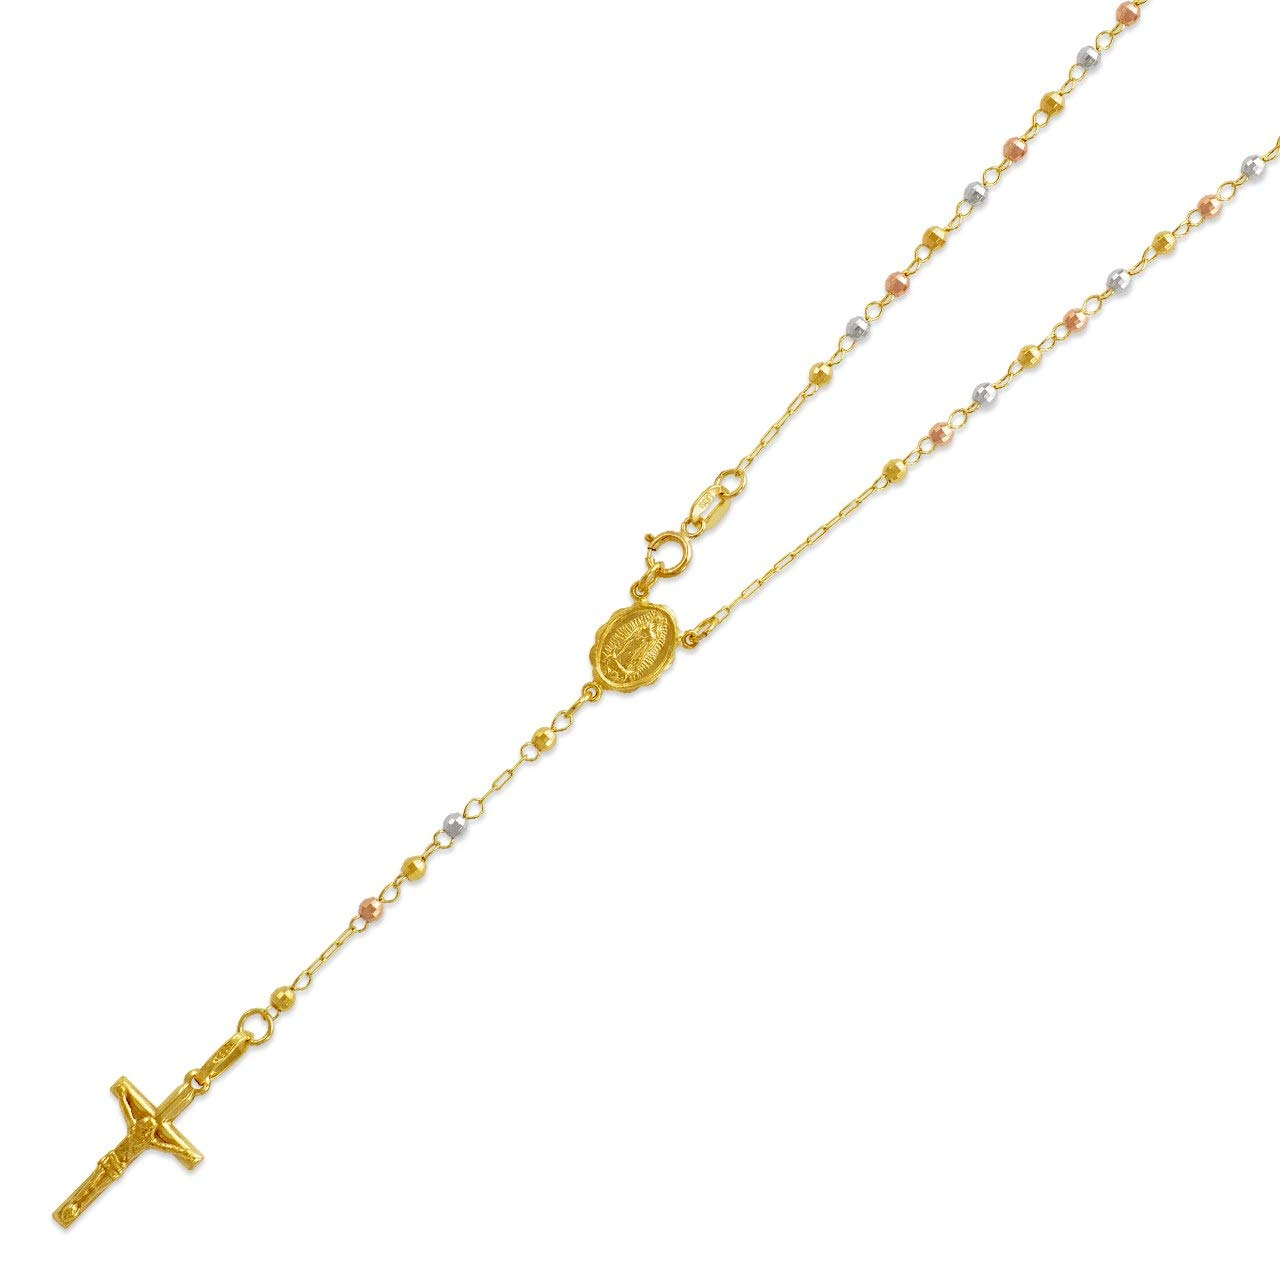 14K Tri-color Gold Chain Cross Necklace DC Bead Rosary Necklace (16, 18, 20, 24, 26''), 18'' by Double Accent